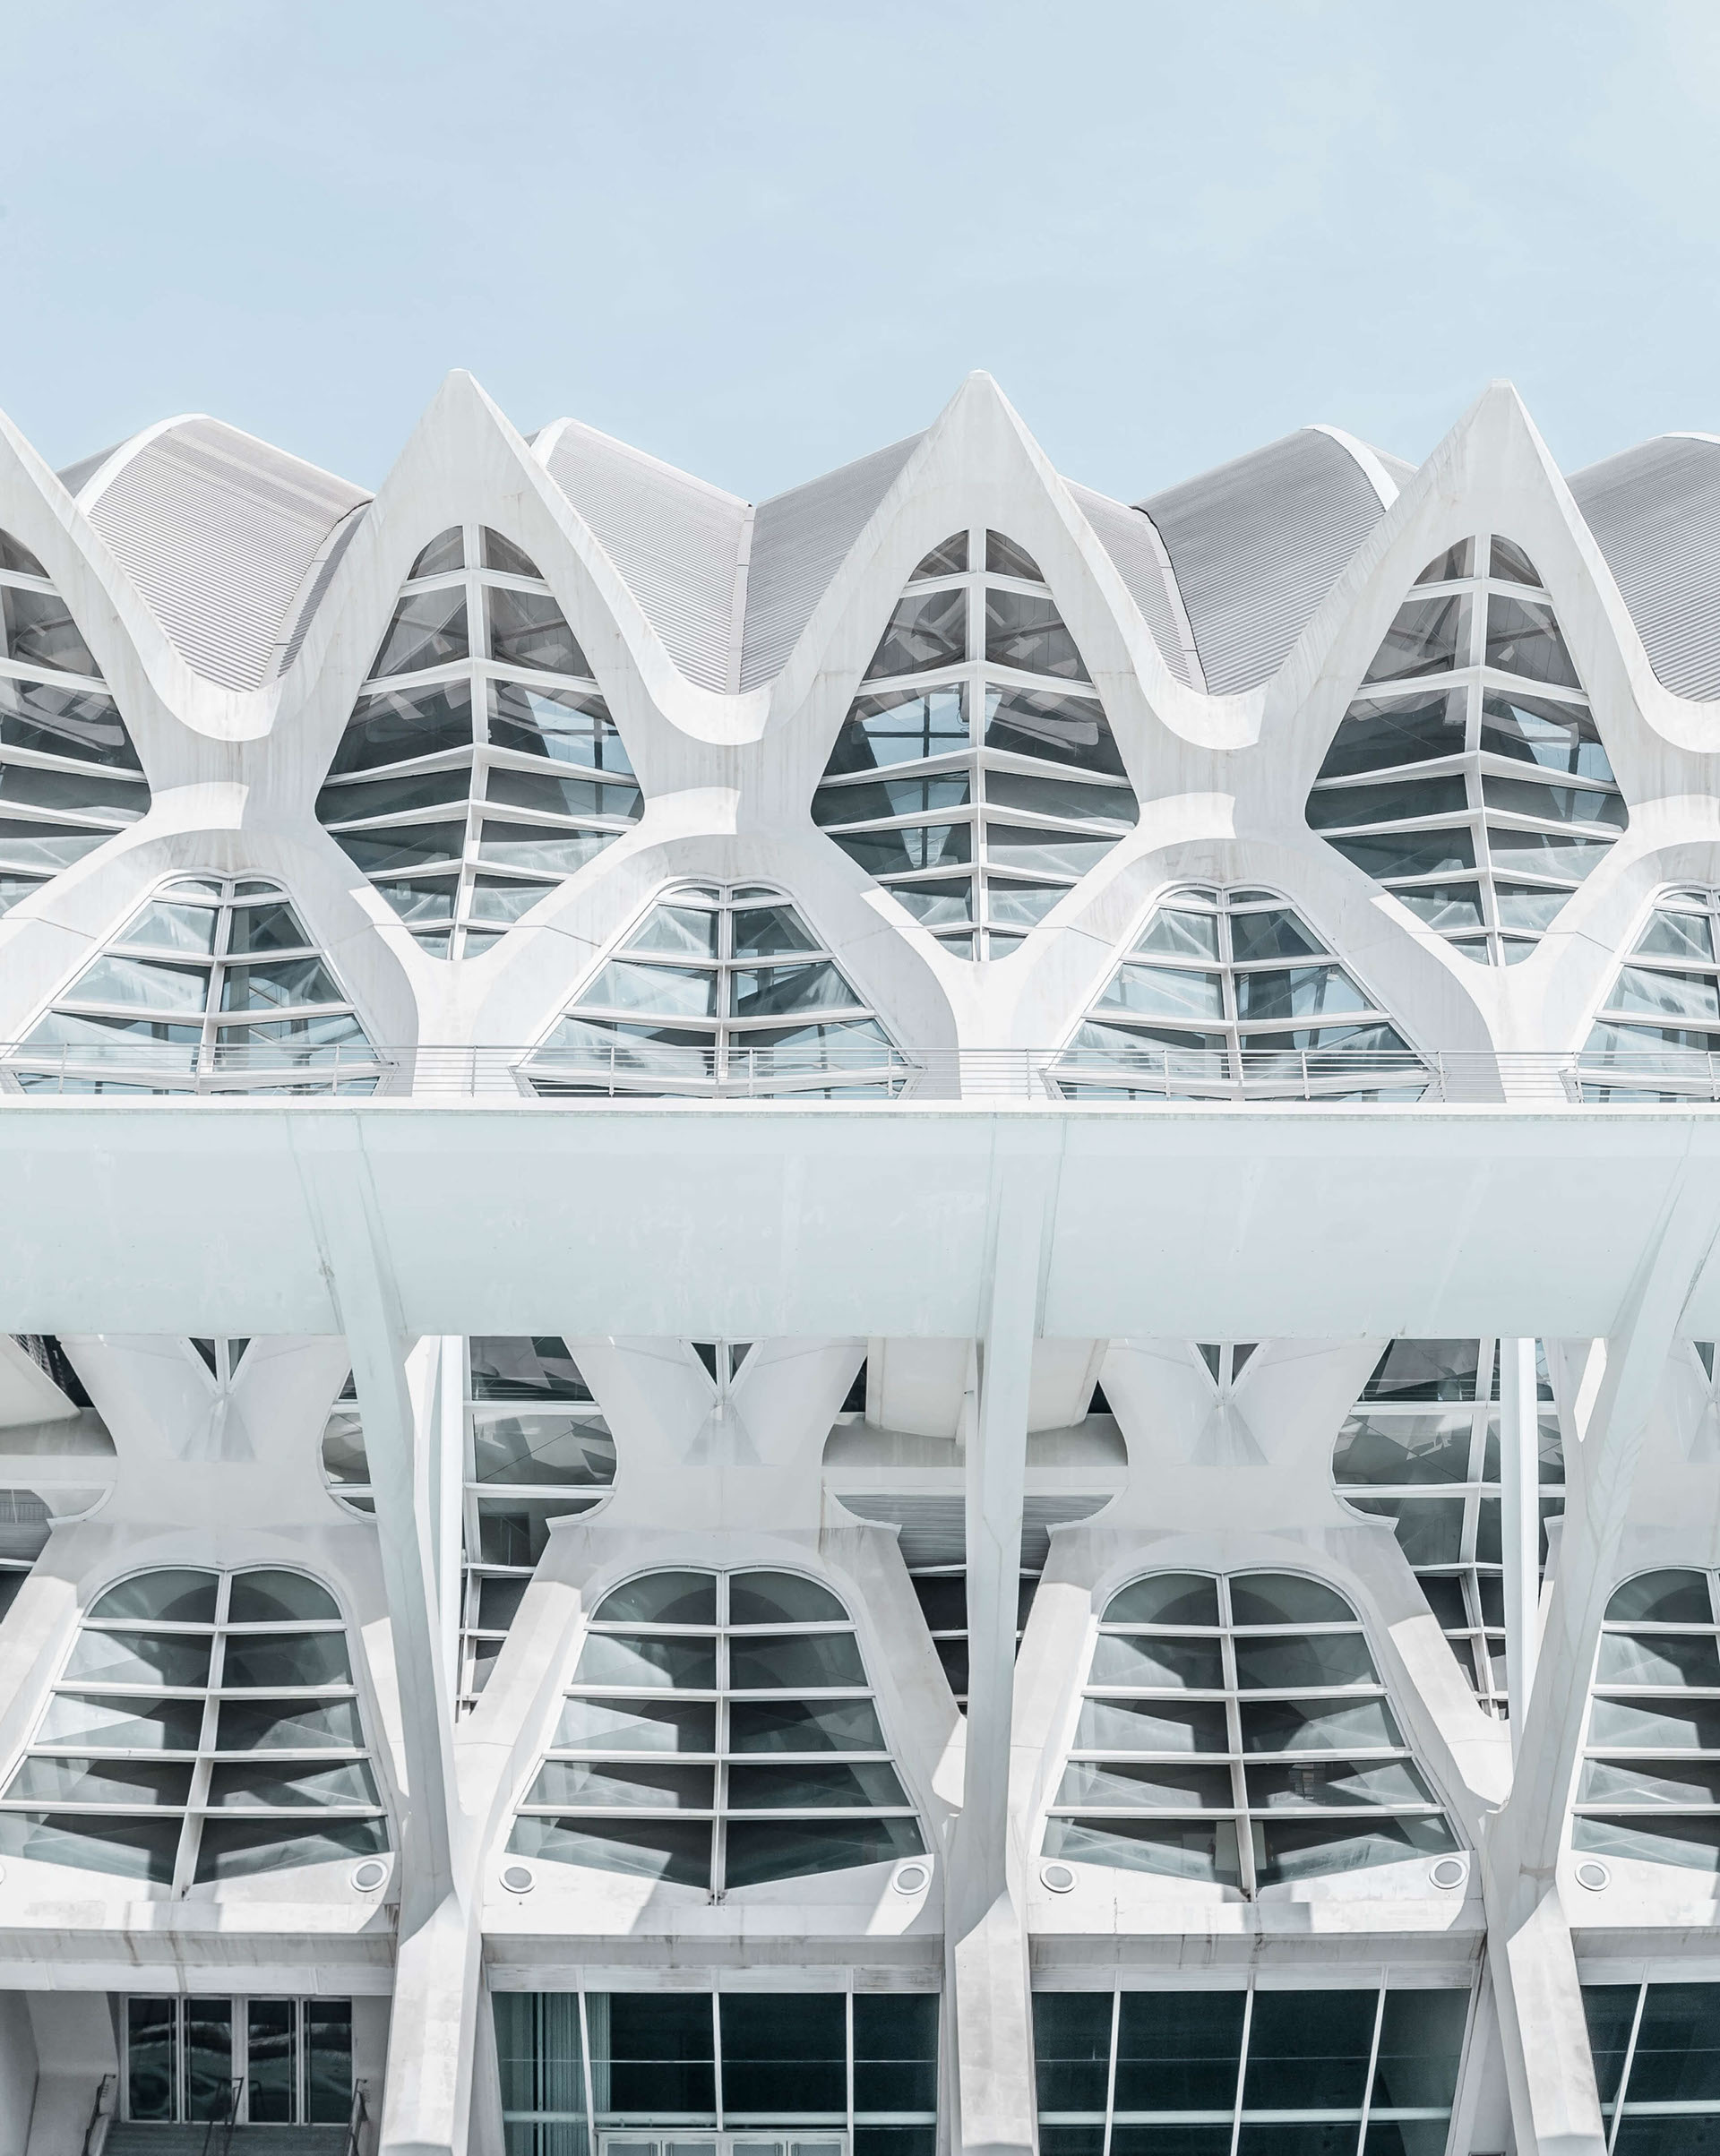 Photography Series: White Harmony in Valencia (City of Light)